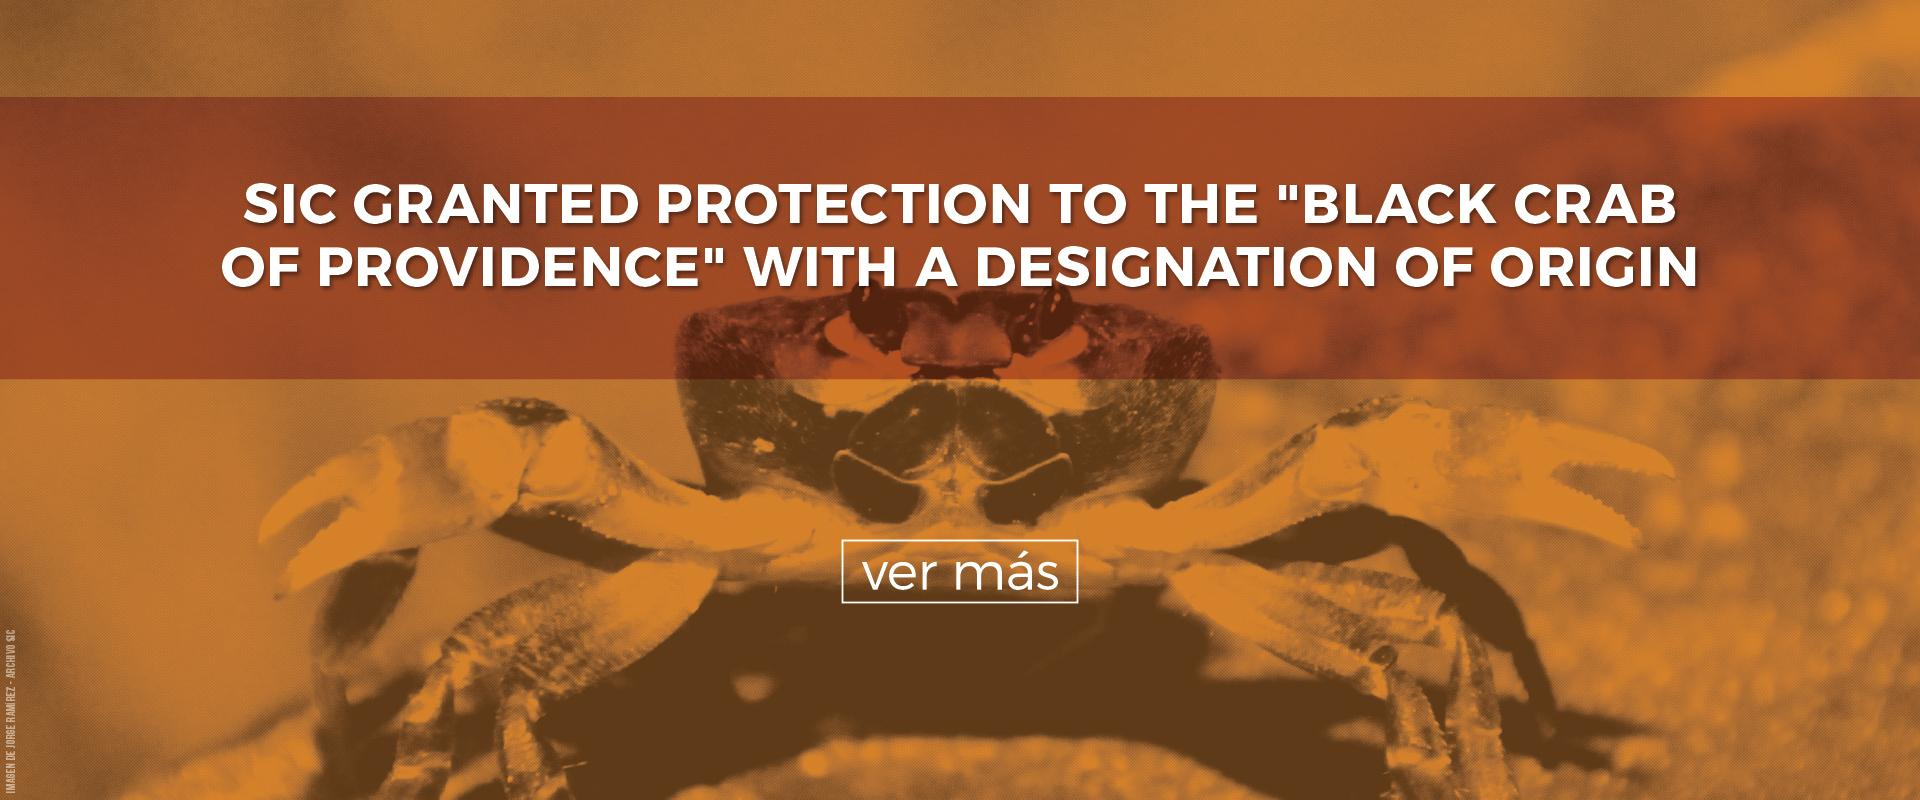 """SIC Granted Protection To The """"Black Crab Of Providence"""" With A Designation Of Origin"""